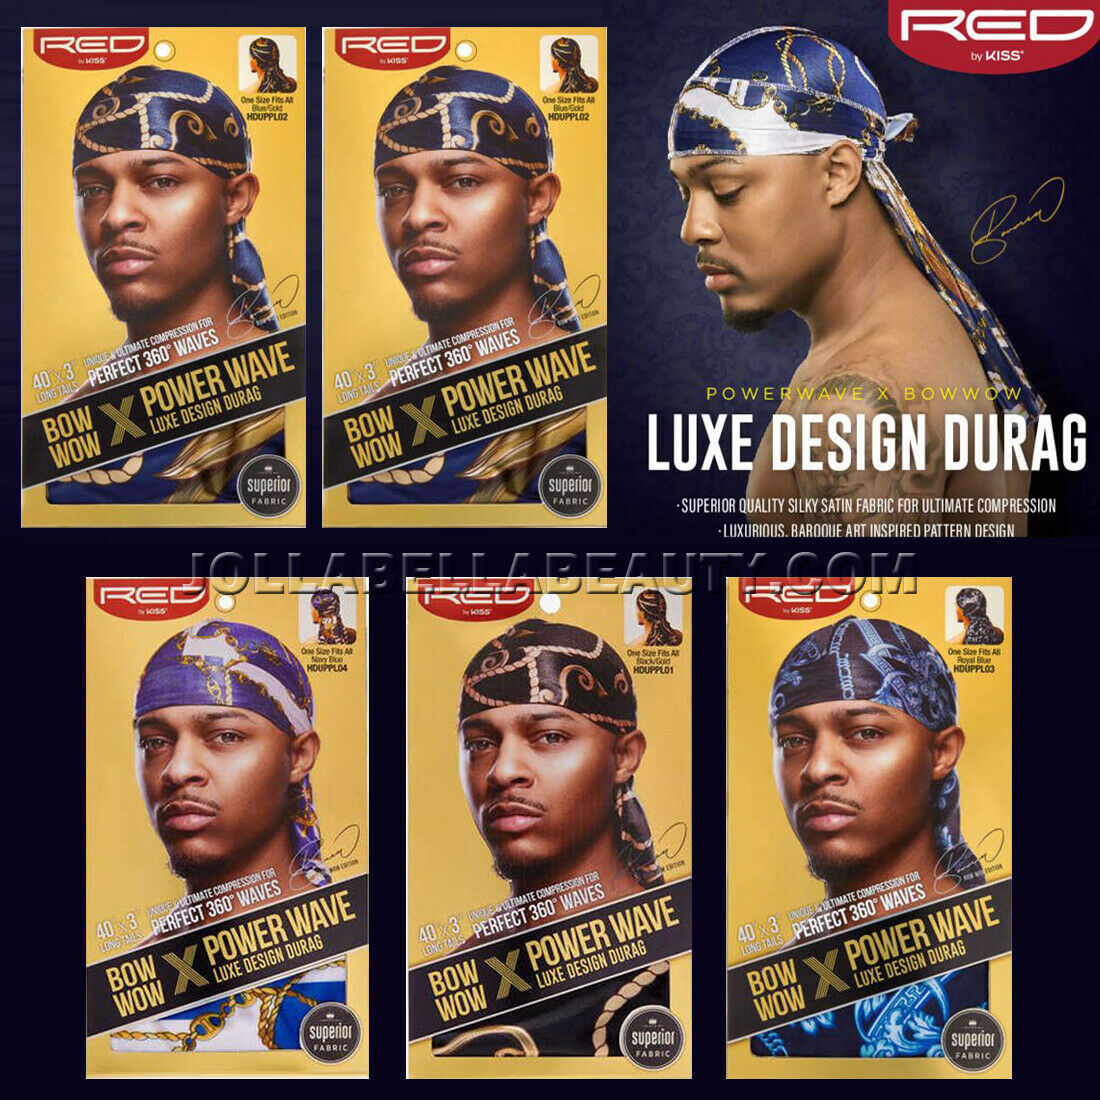 "Primary image for Kiss Bow Wow Power Wave Luxe Design Pattern Men's Durag 40""x3"" Long Tail *1PC"